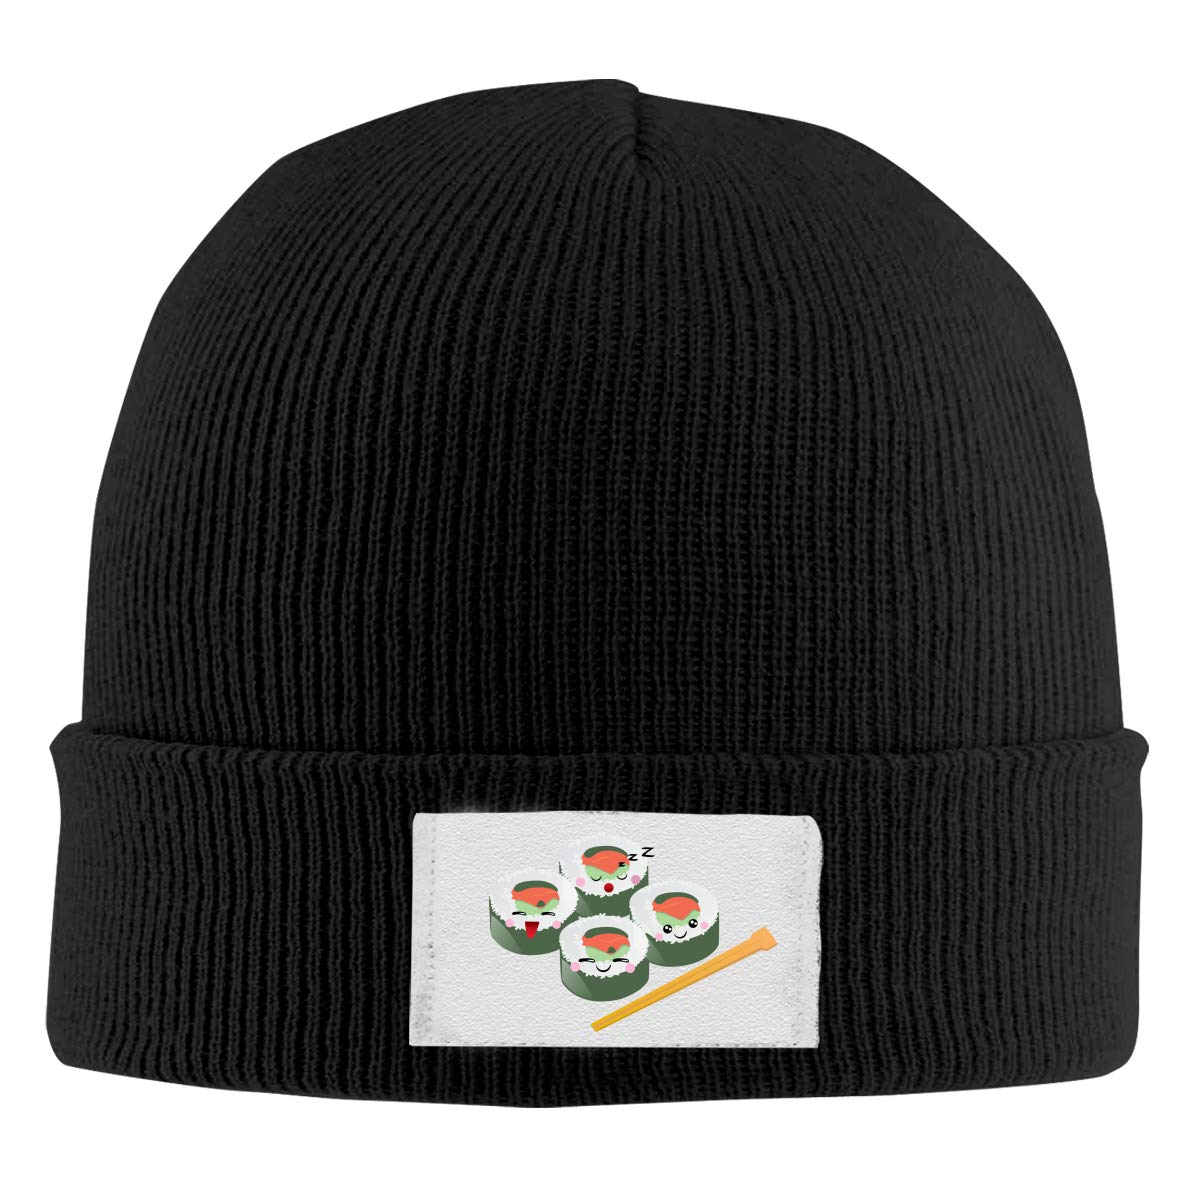 Dunpaiaa Skull Caps Sushi Logo Winter Warm Knit Hats Stretchy Cuff Beanie Hat Black